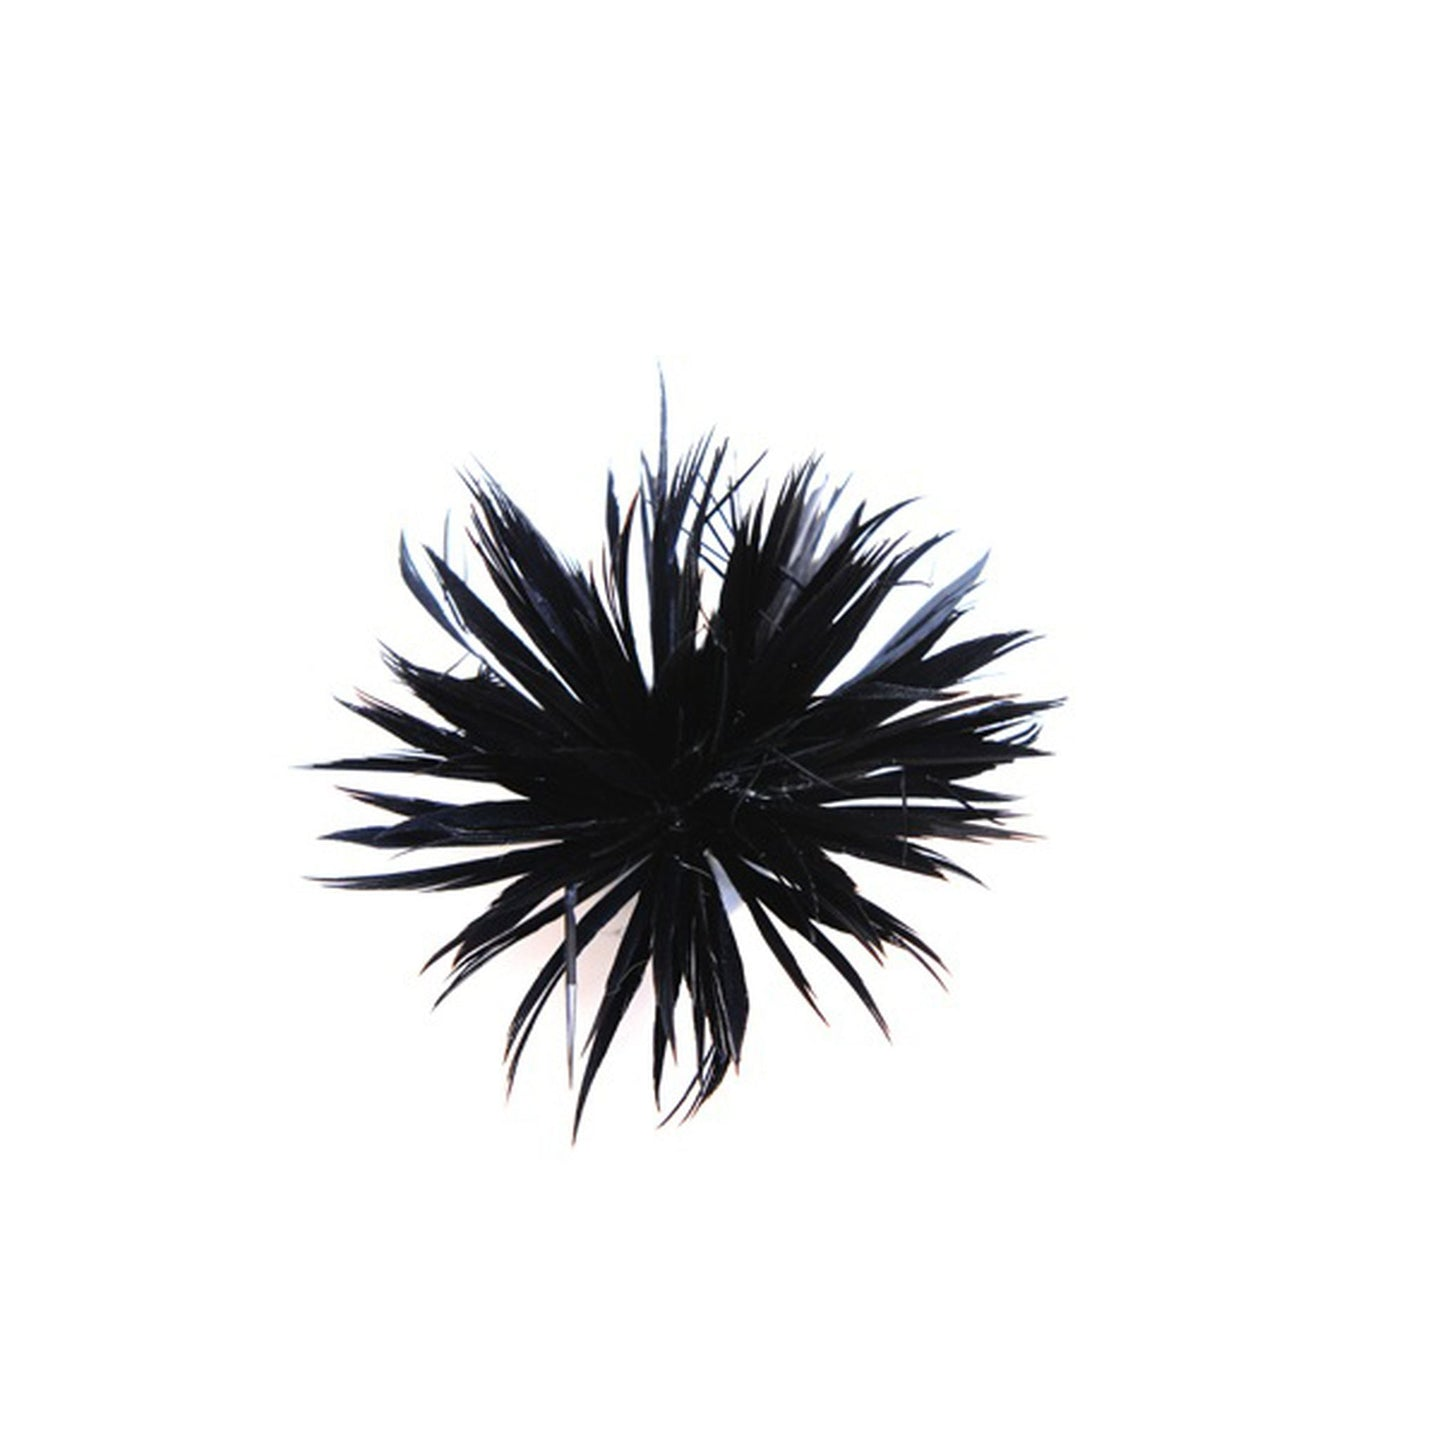 Spiky goose biot feather mount for millinery fascinators wedding hats FM093